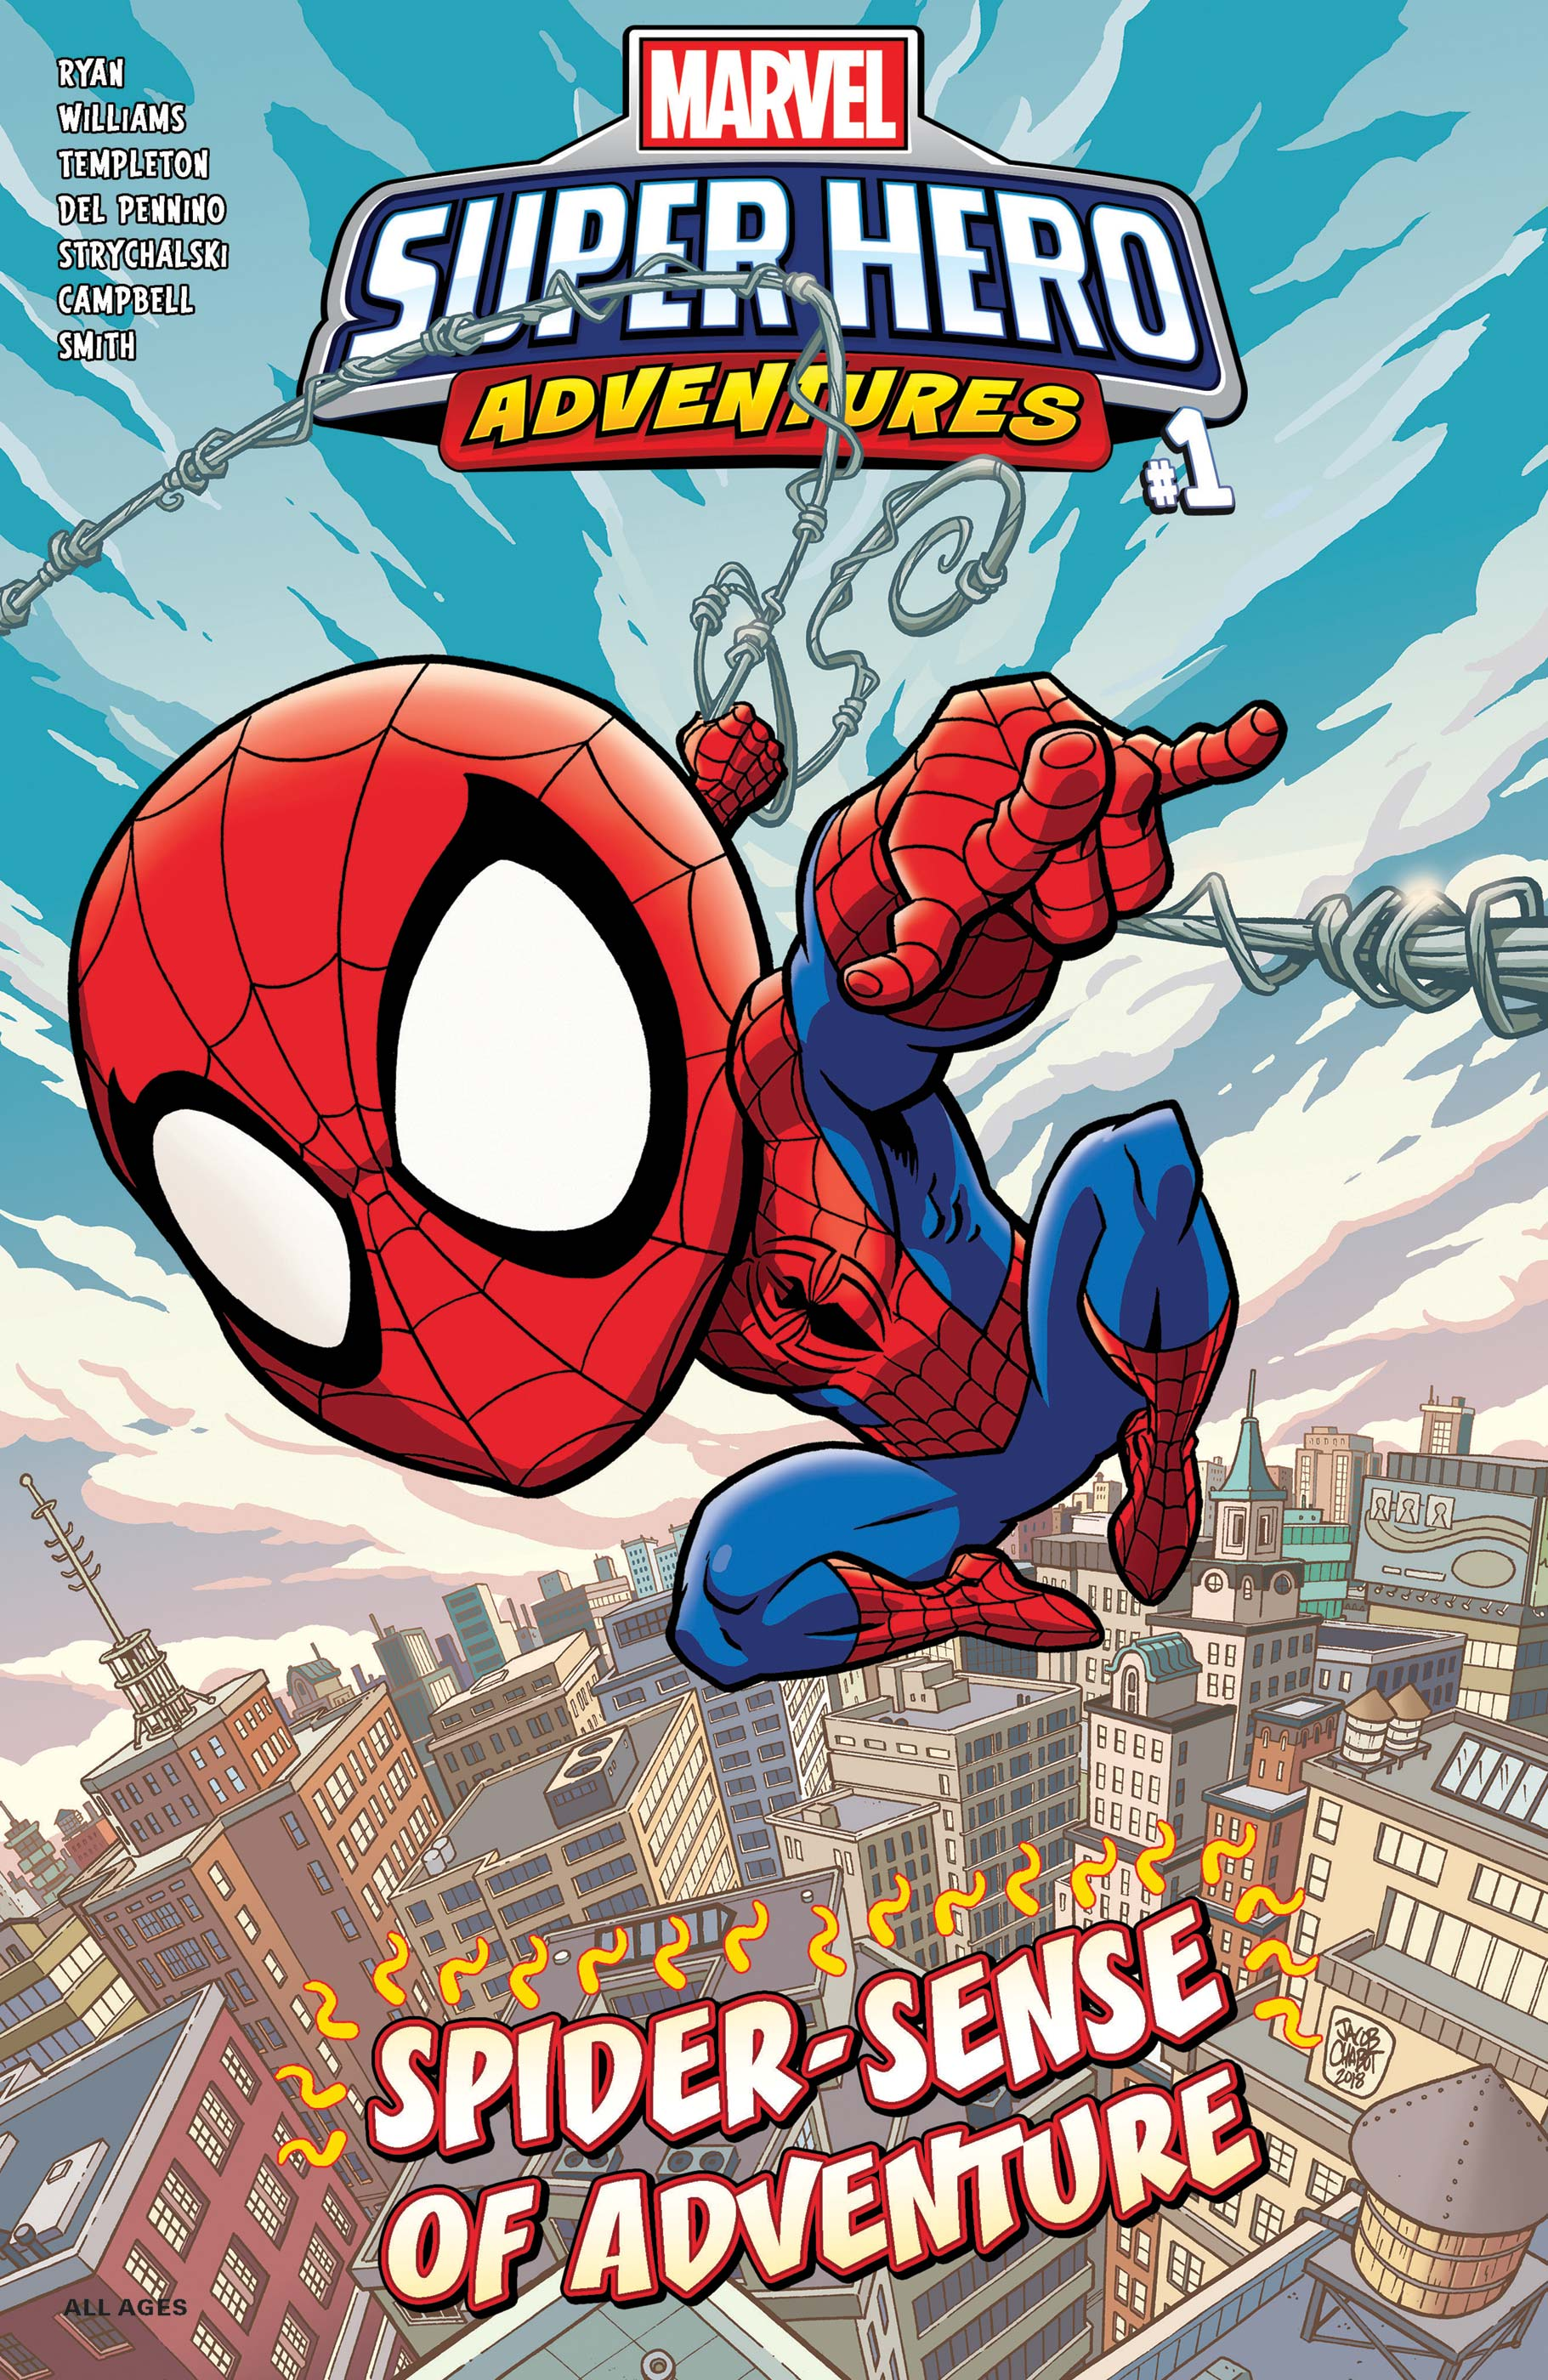 Marvel Super Hero Adventures: Spider-Man - Spider-Sense of Adventure (2019) #1